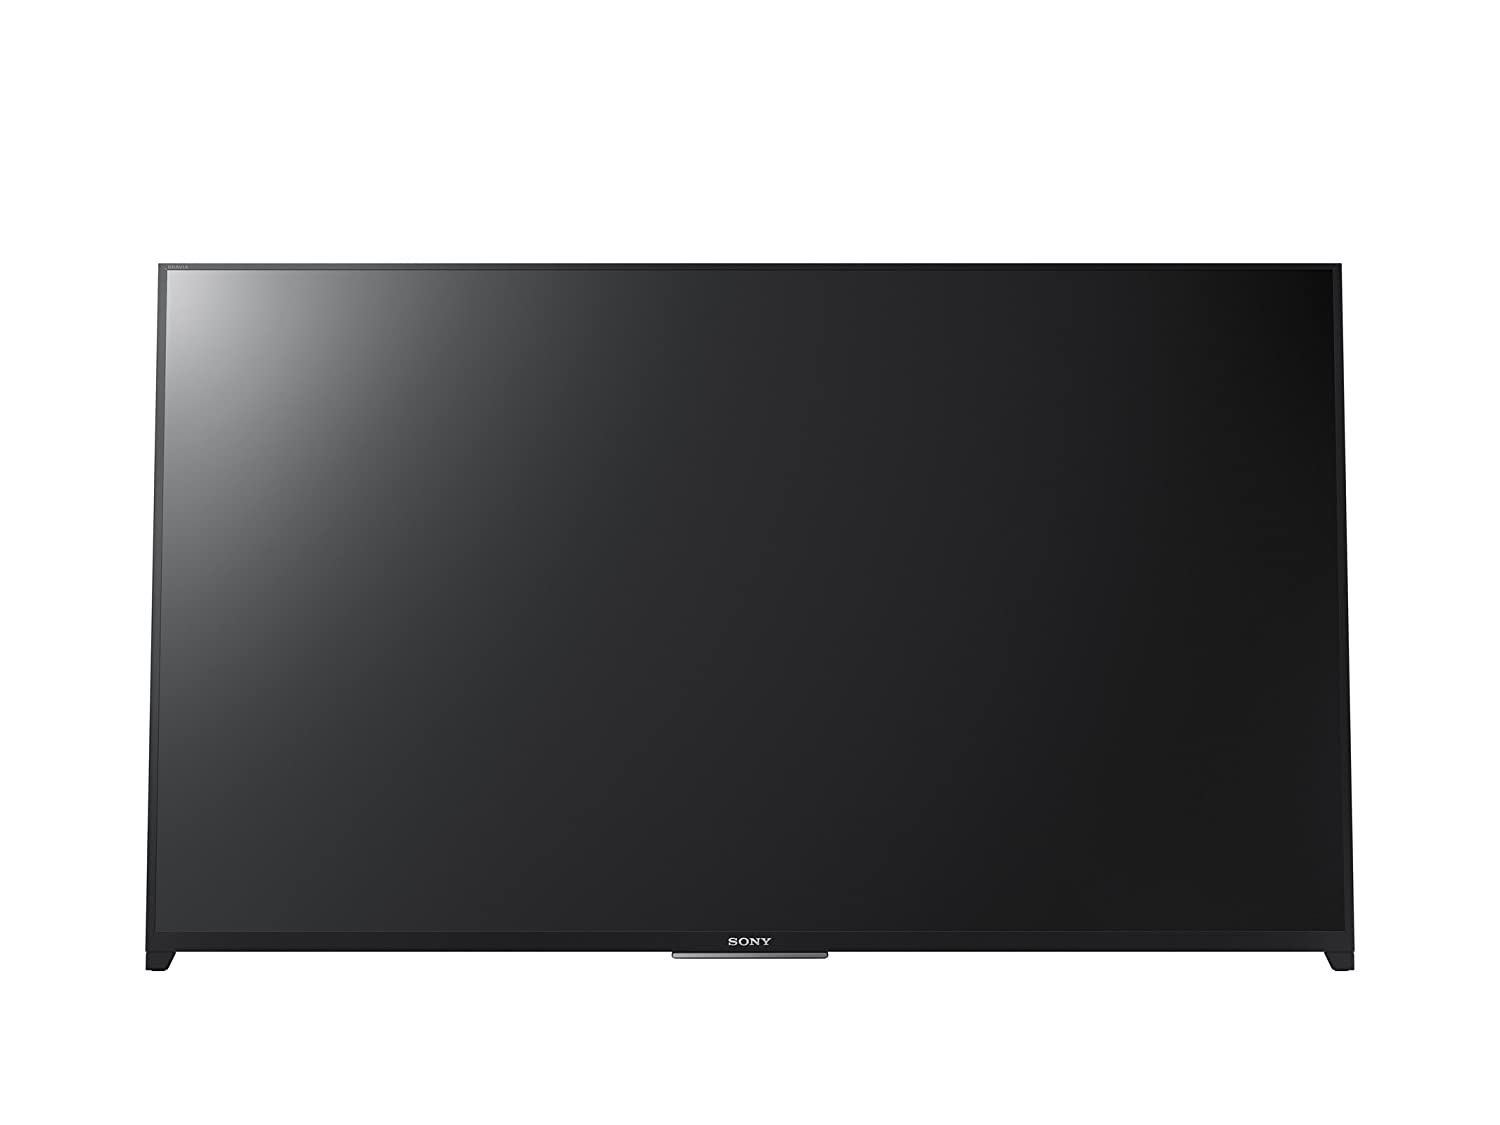 Sony Bravia KDL-50W950D 126cm (50 inches) Full HD 3D Android LED TV